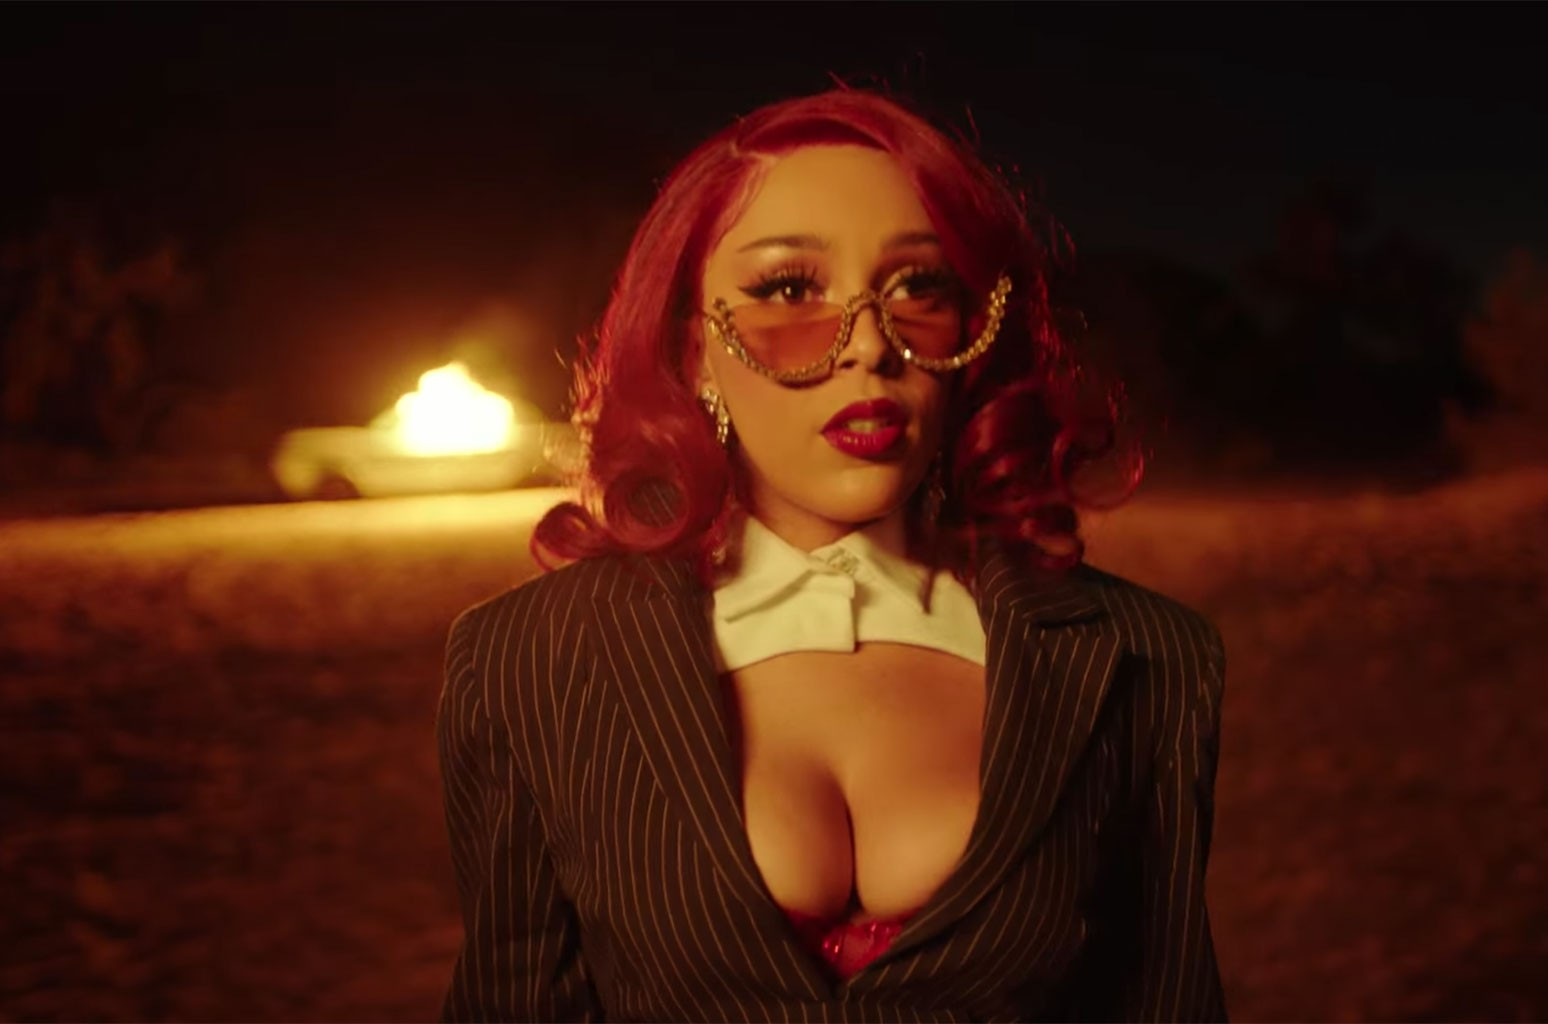 DOJA CAT REVEALS SHE CAME THIS CLOSE TO DEATH - ALMOST